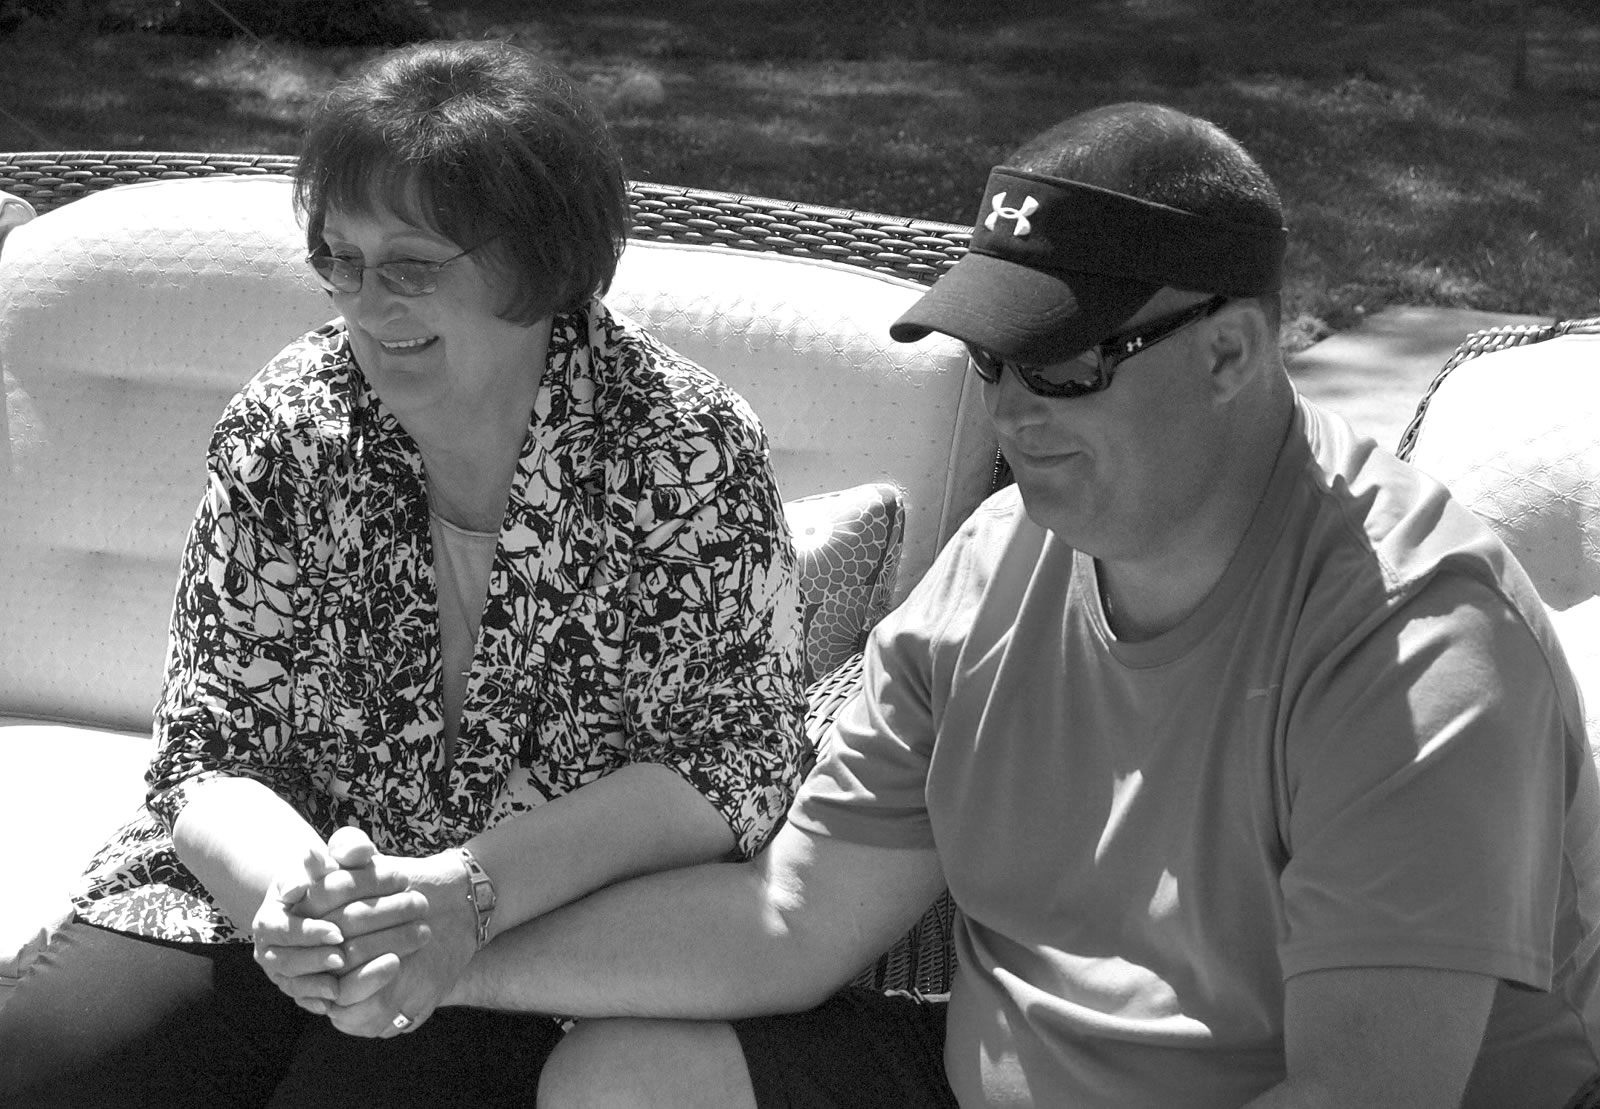 "Paula Alwin and David Hattaway, a parishioner of St. Joseph Church in Shawnee, met this spring after 45 years. Alwin gave birth to him in 1966 and placed the baby for adoption, believing she would never know him. Hattaway wanted to know more about her and searched for her this year. They began writing letters, made phone calls, and finally met in person. ""Before we met, I see that God really allowed us to get to know each other,"" Alwin said. They found they bear striking physical similarities and have many shared interests.  (Photo by Jessica Langdon)"